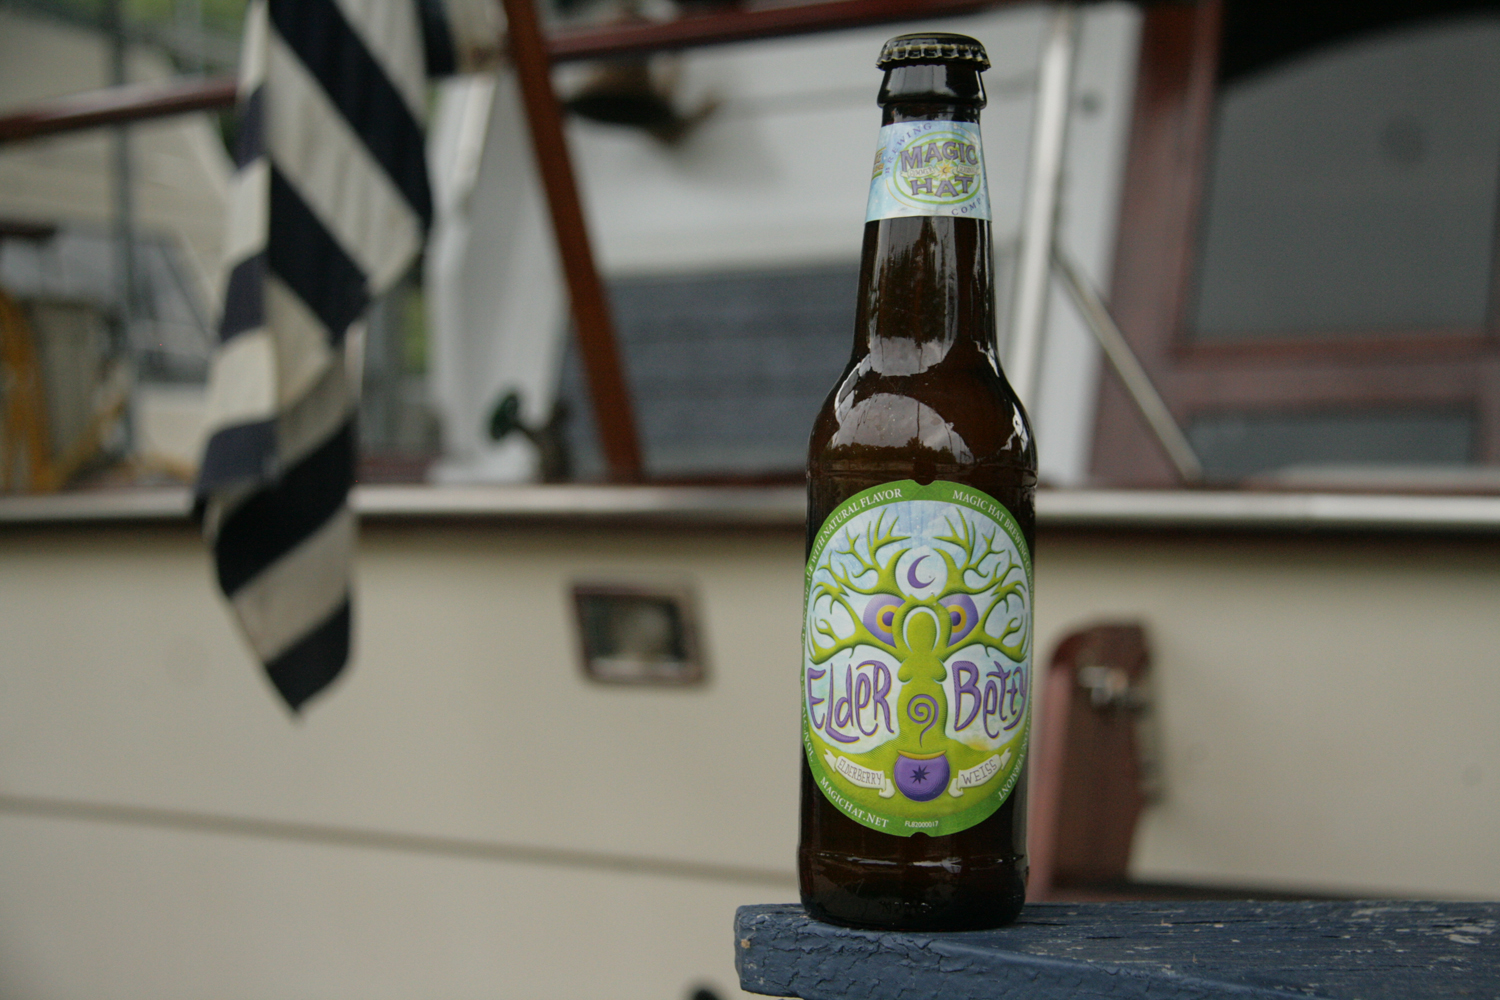 Elder Betty from Magic Hat is a refreshing elderberry summer beer.